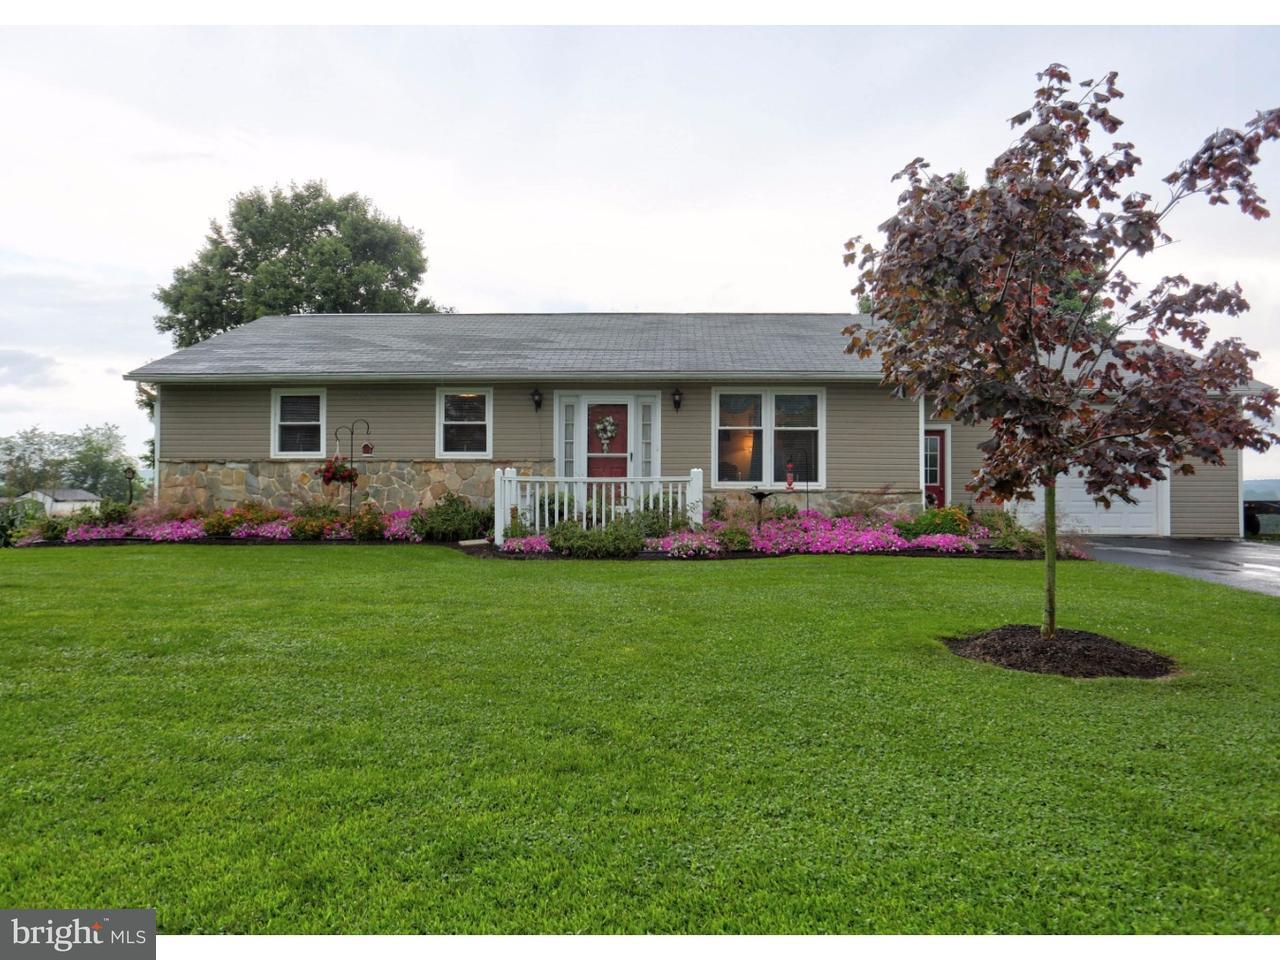 Single Family Home for Sale at 225 UPPER VALLEY Road Christiana, Pennsylvania 17509 United States